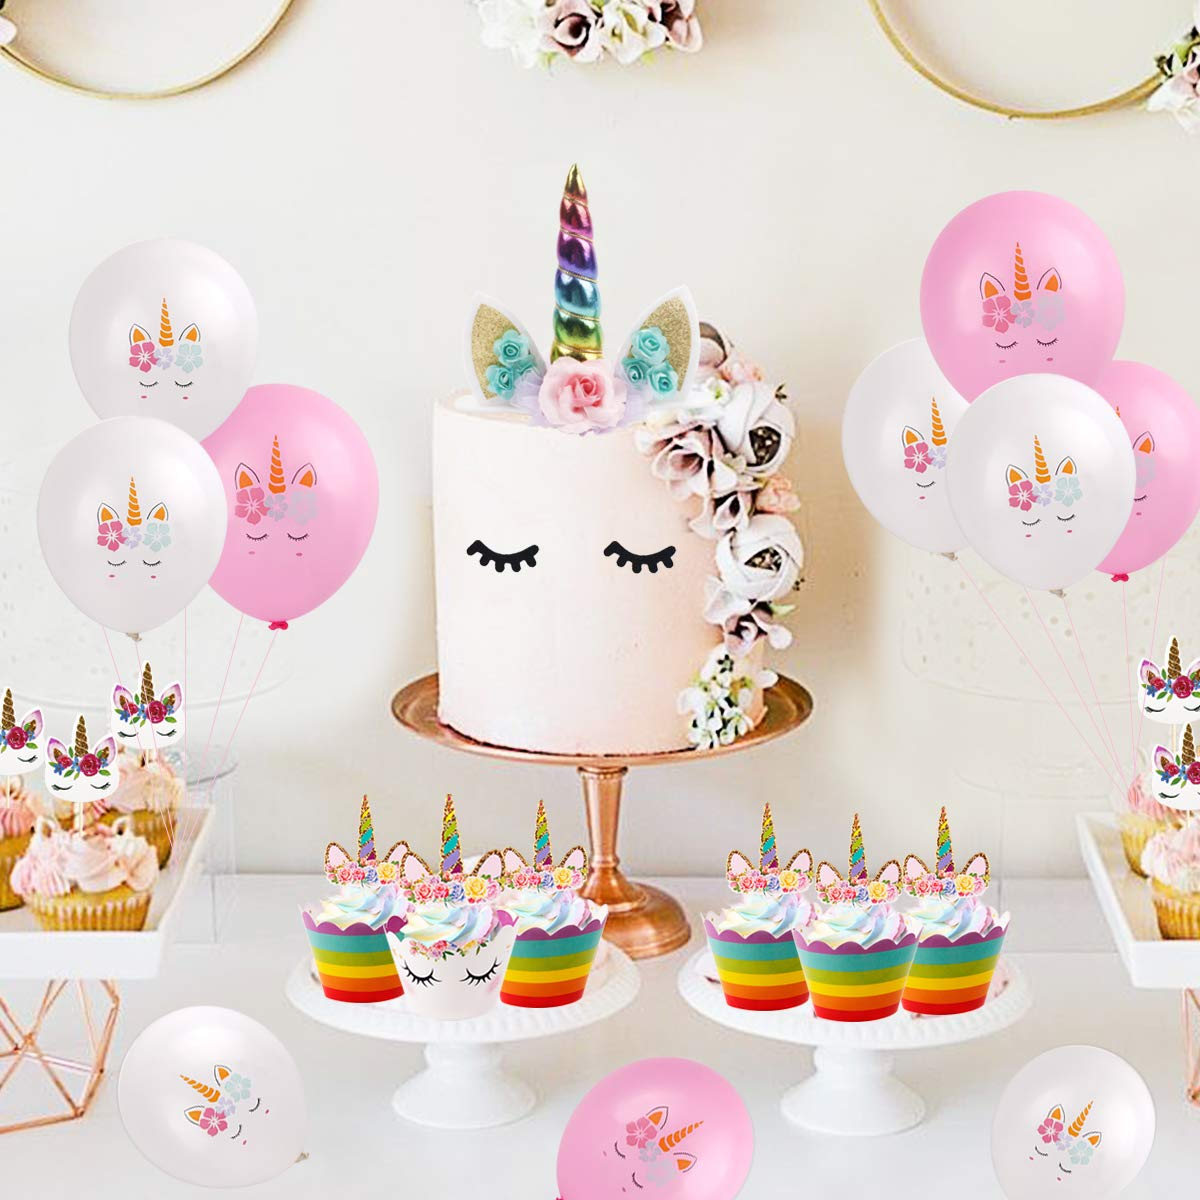 61Pcs Unicorn Cake Topper - Unicorn Horn Party Cake Decoration, Unicorn Cupcake Toppers, Unicorn Cupcake Wrappers, Banner, Unicorn Balloons for Birthday Party, Baby Shower (Unicorn Cake Topper) by QIFU (Image #7)